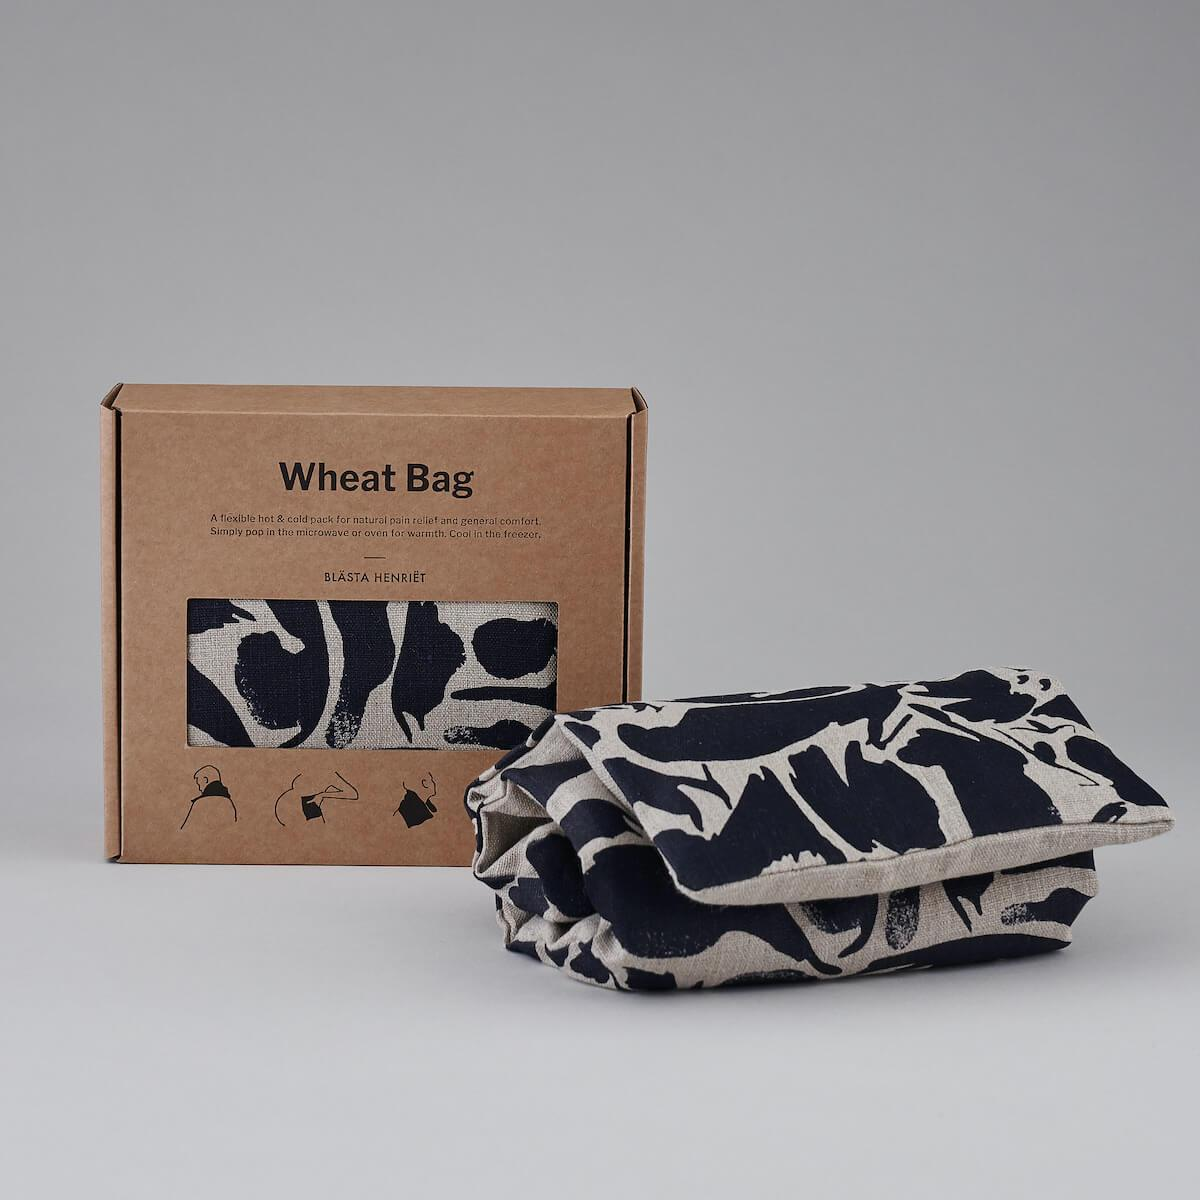 Wheat Bag heat pack - Blasta Henriet